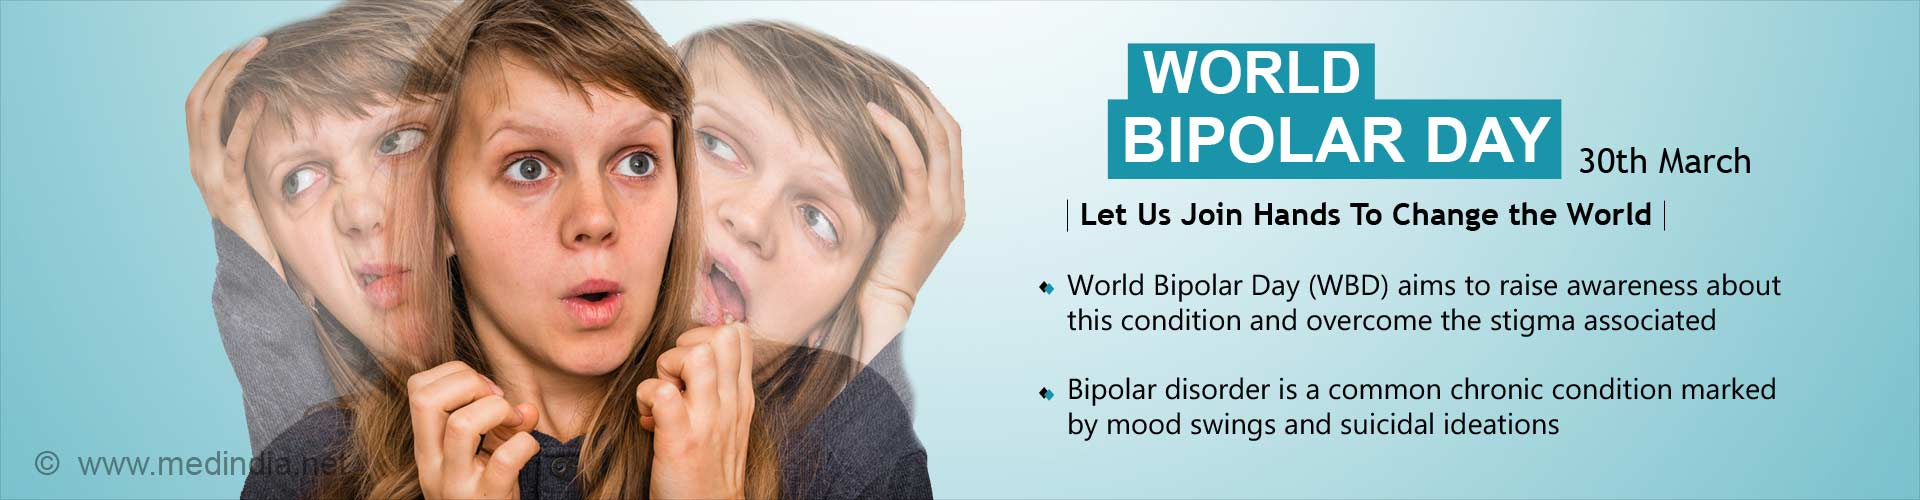 Strength for Today, Hope for Tomorrow - World Bipolar Day